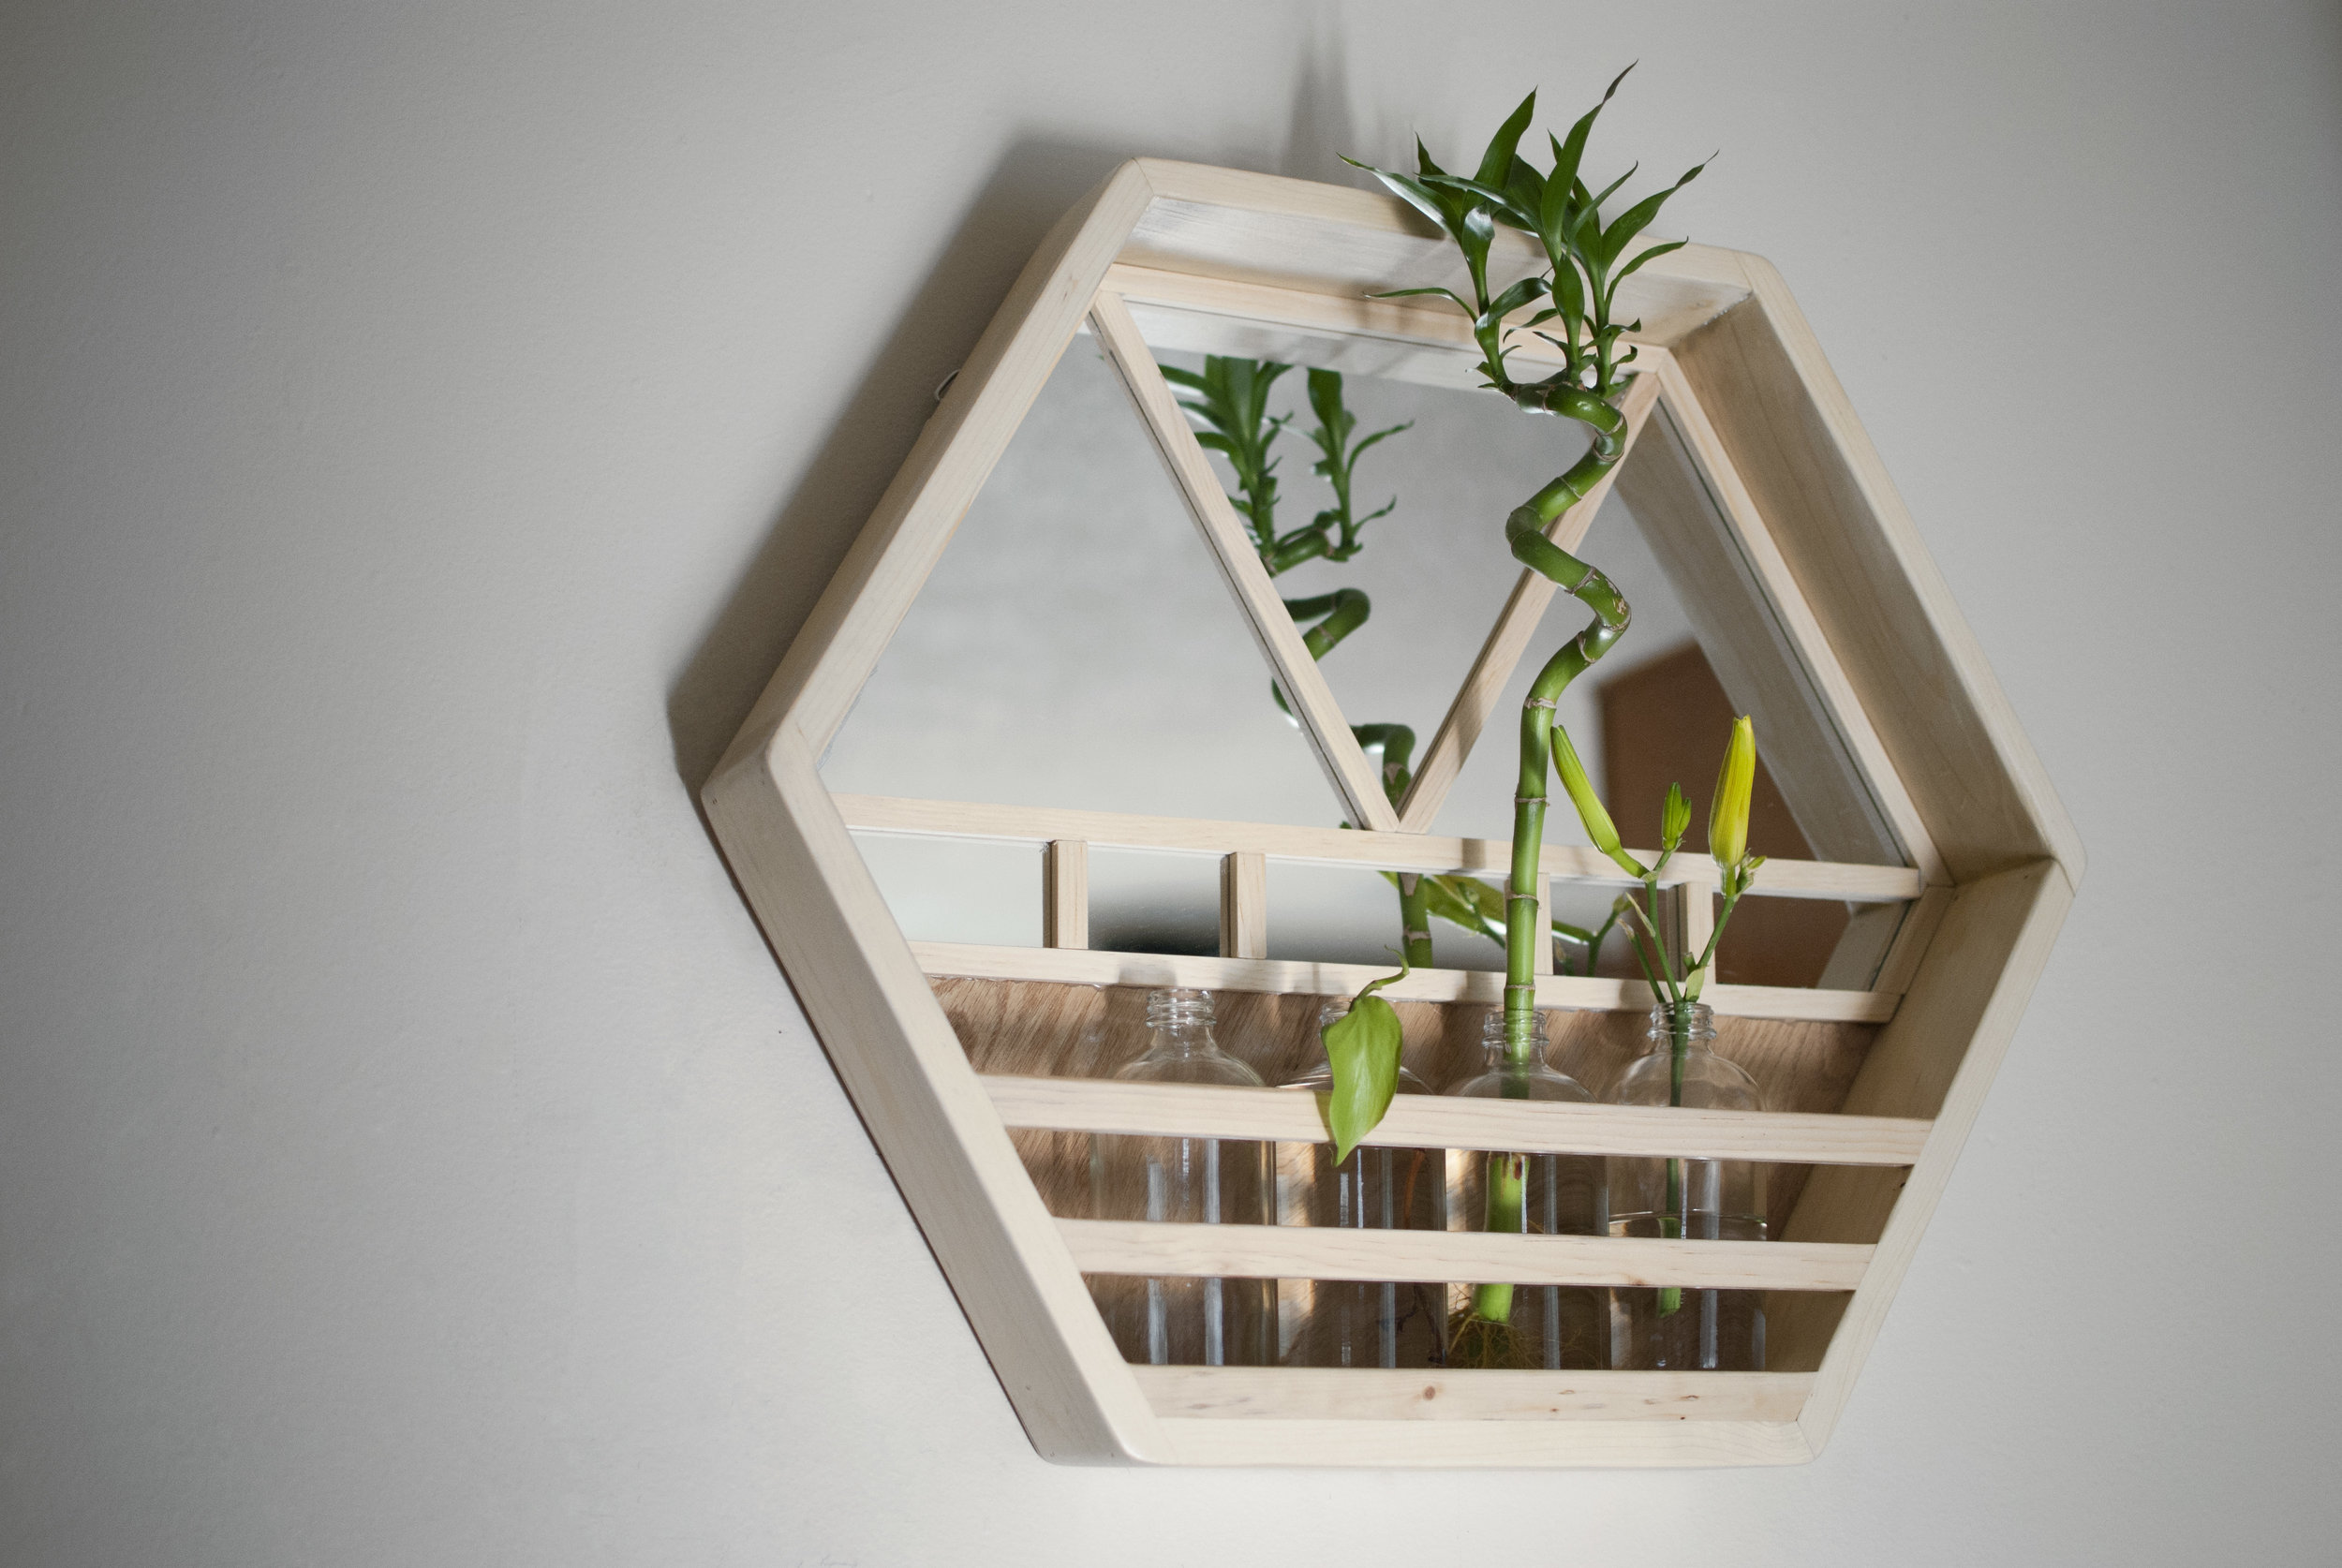 Chuck made this hexagonal wall planter from reclaimed wood and mirrors.  The jars currently house bamboo and freshly cut daylilies. It's so fun to wait for those flowers to open up!